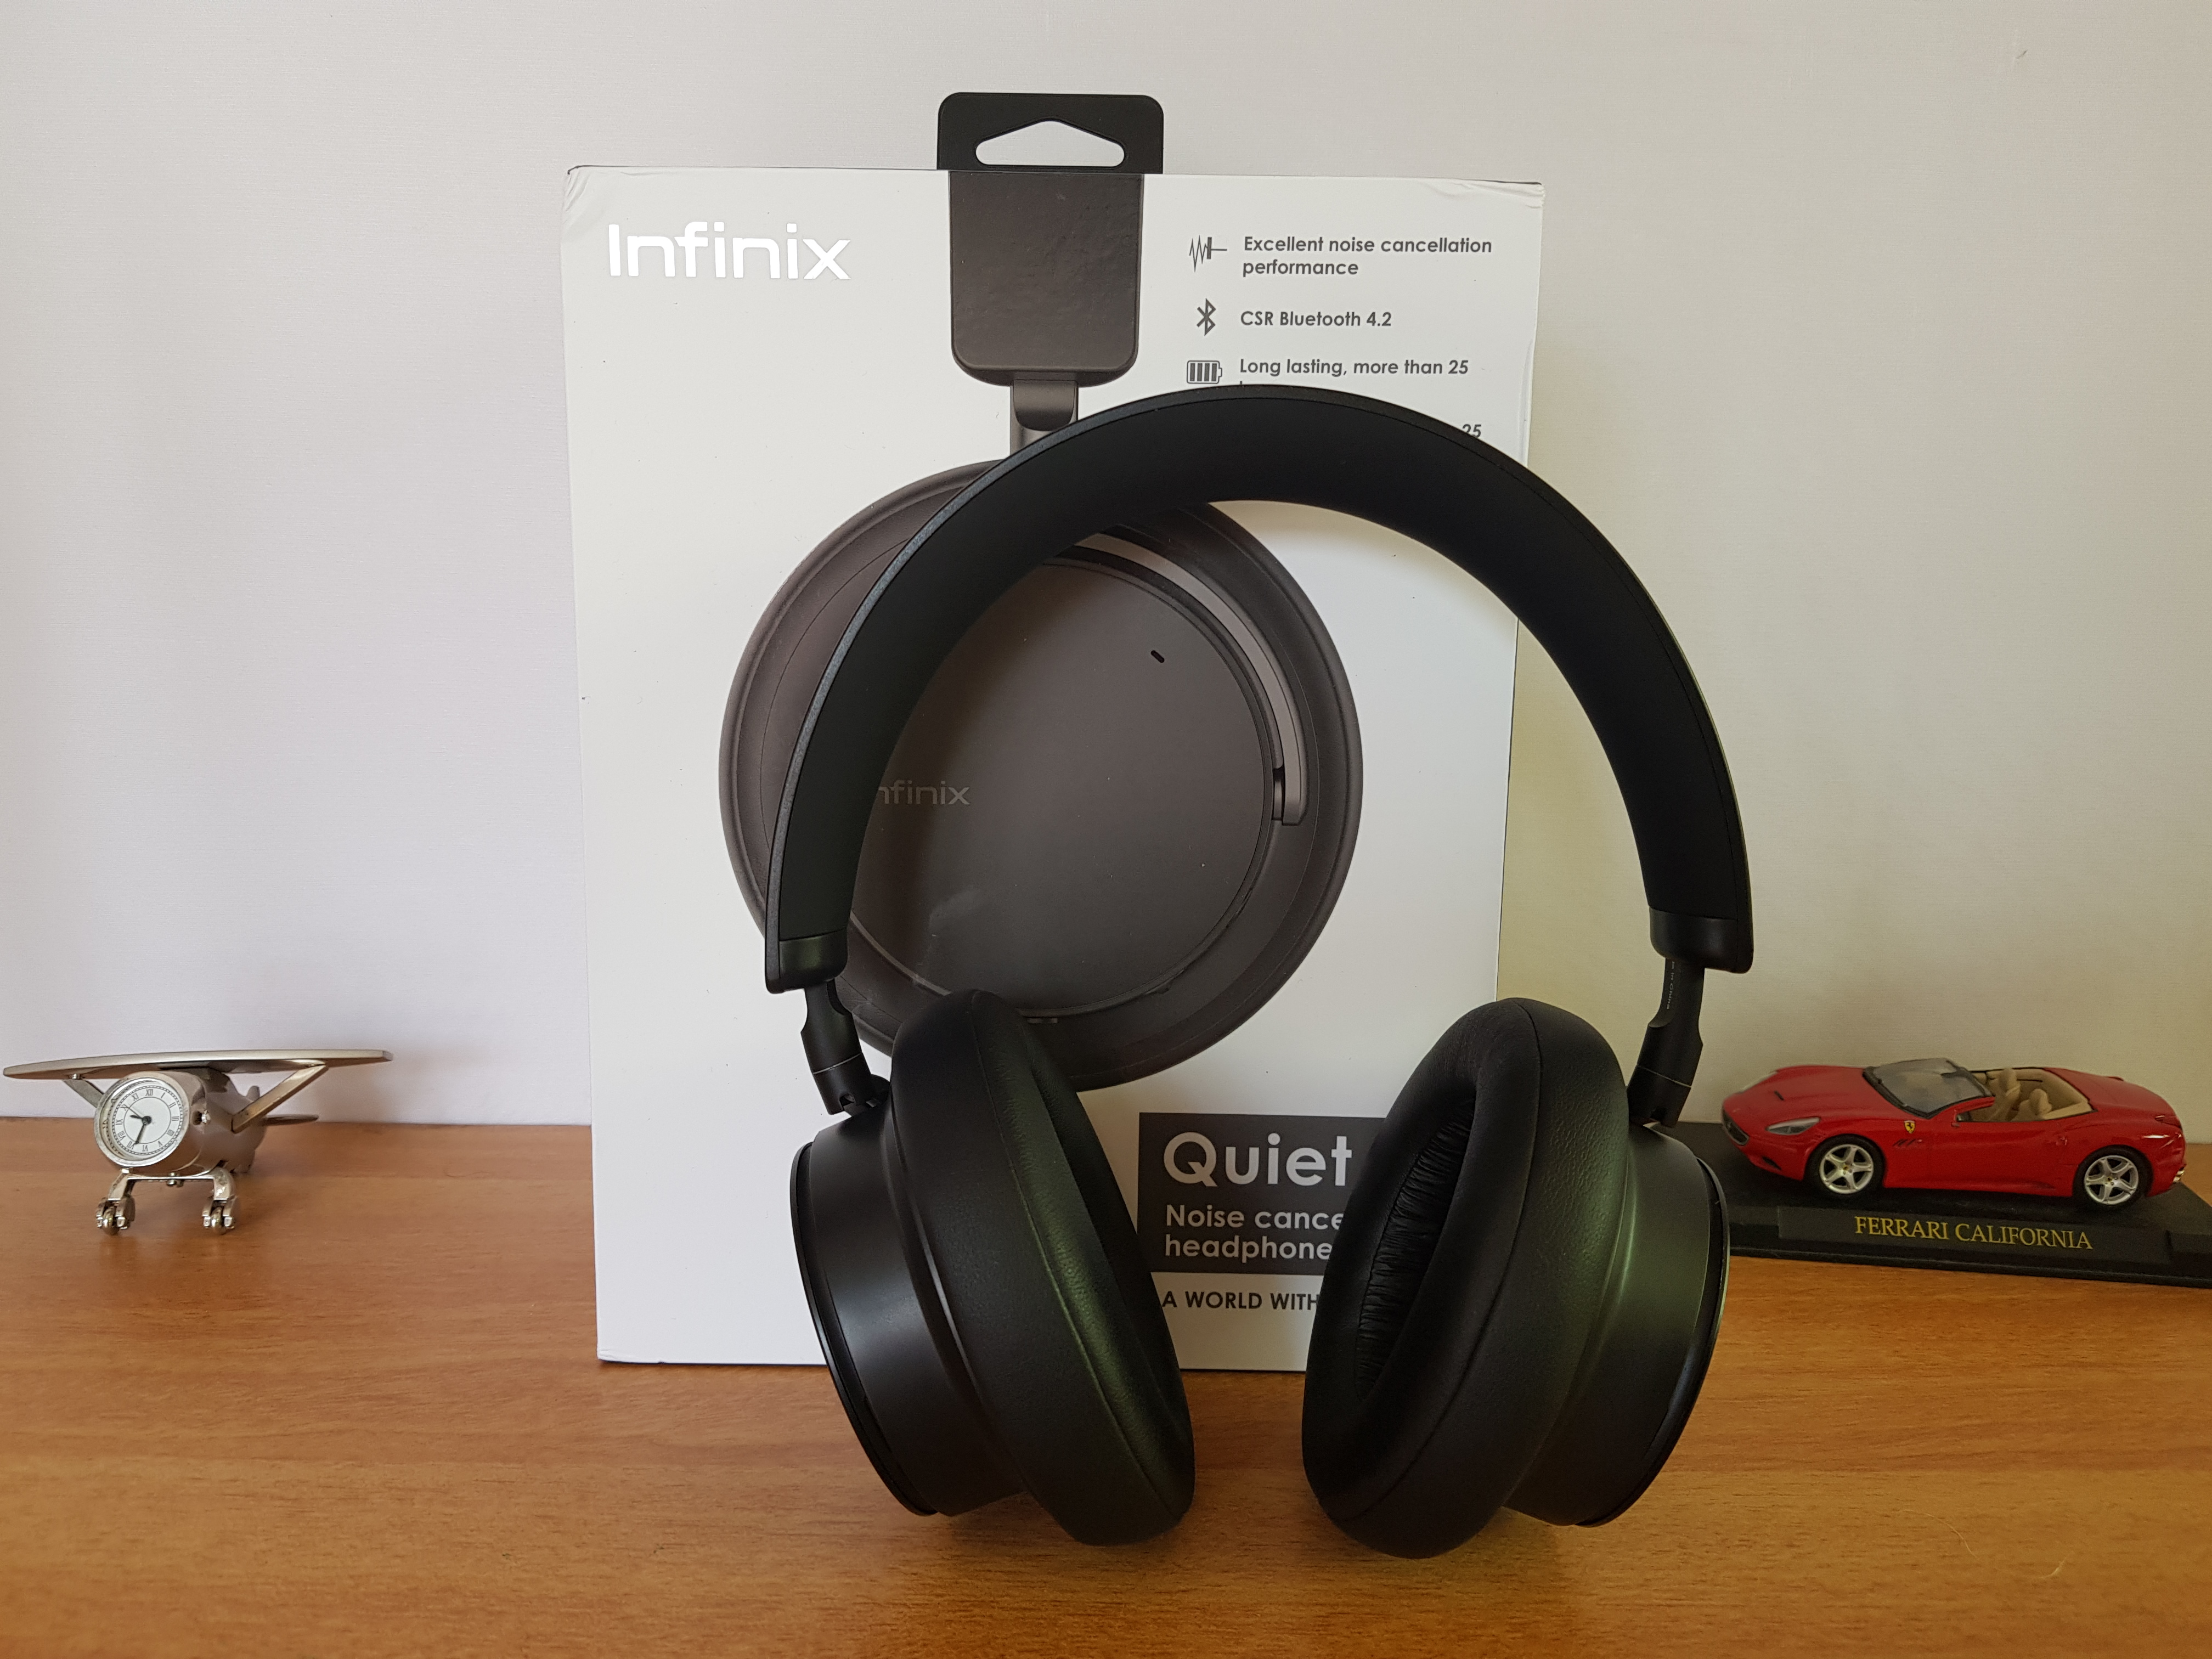 a4afe27f074 Infinix QuietX Headphones Review (with Active Noise Cancellation)